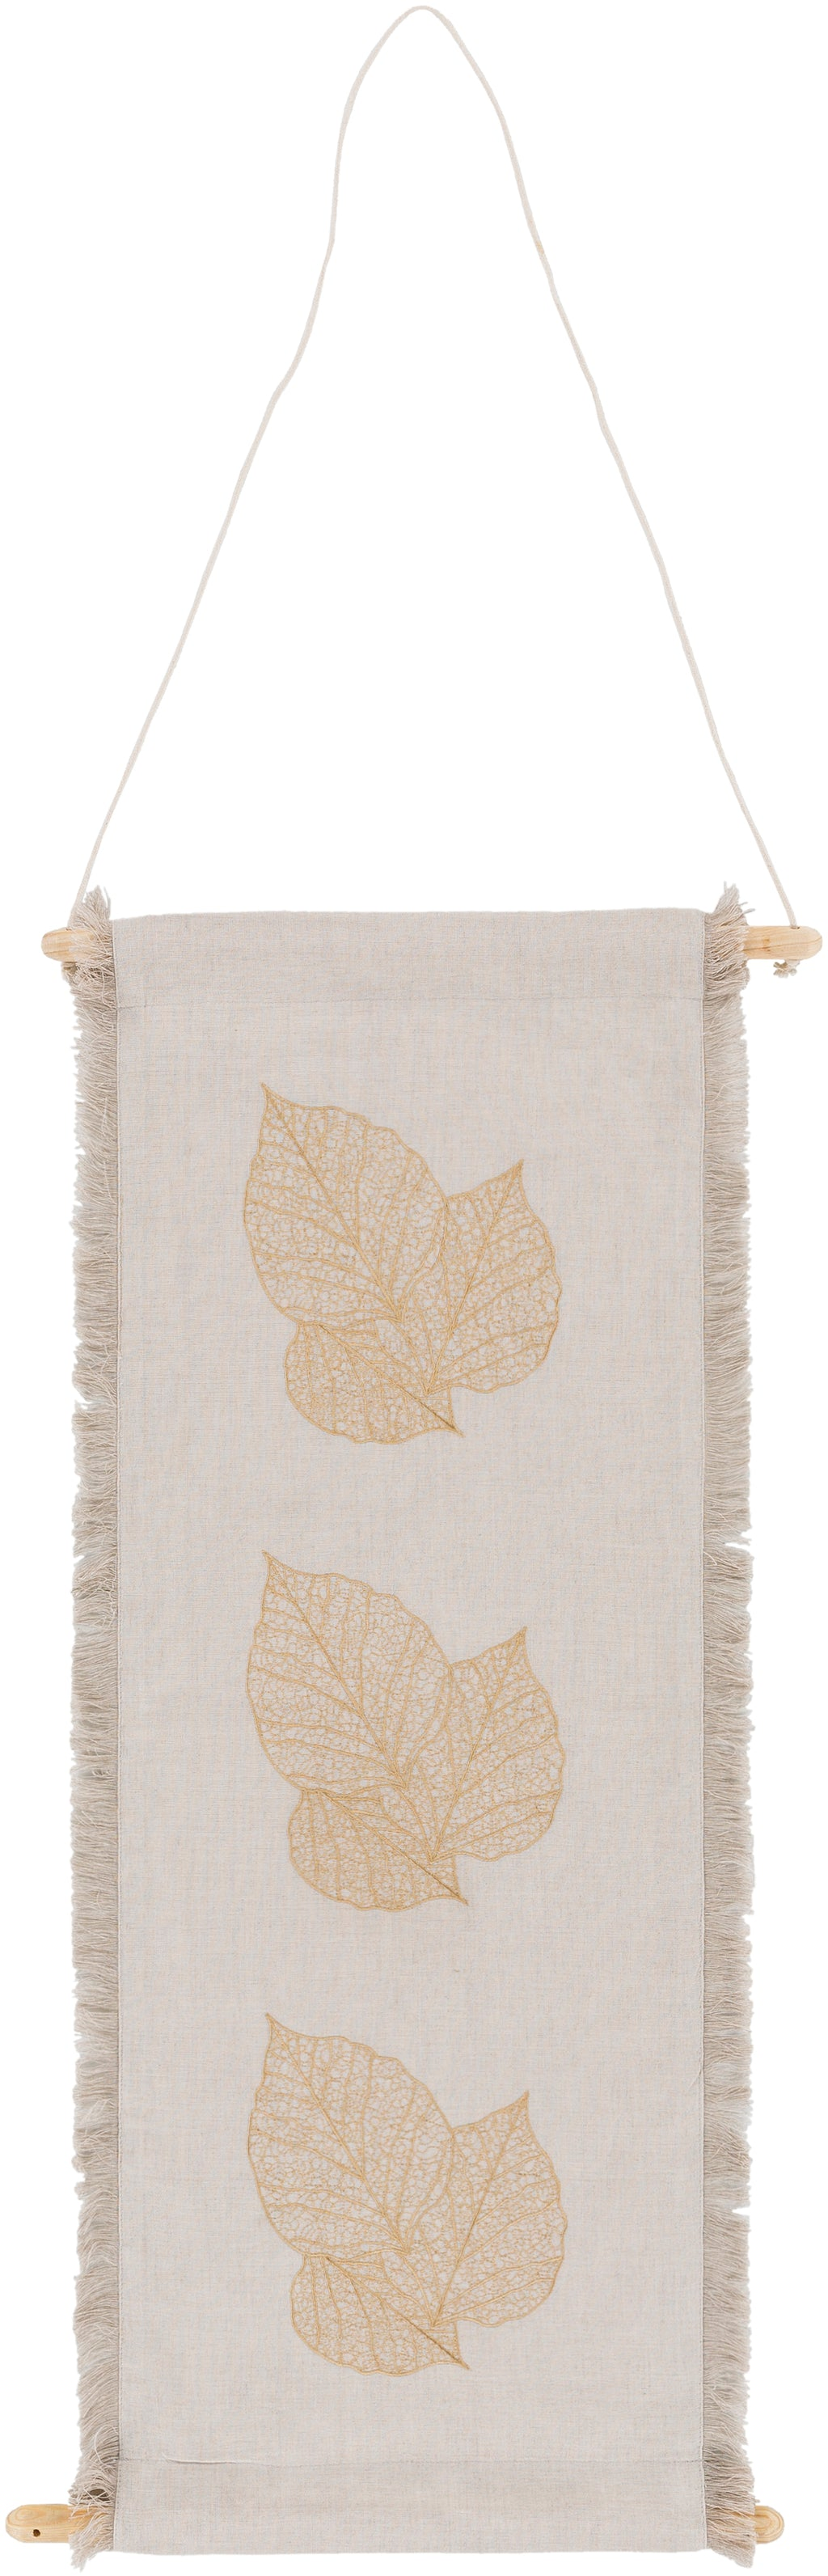 Embodying time-honored designs that have been revered for generations, the Leaves Collection redefines vintage charm from room to room within any home décor. The meticulously woven construction of these pieces boasts durability and will provide natural charm into your decor space. Made in India. For optimal product care, wipe clean with a dry cloth. Manufacturers 30 Day Limited Warranty.